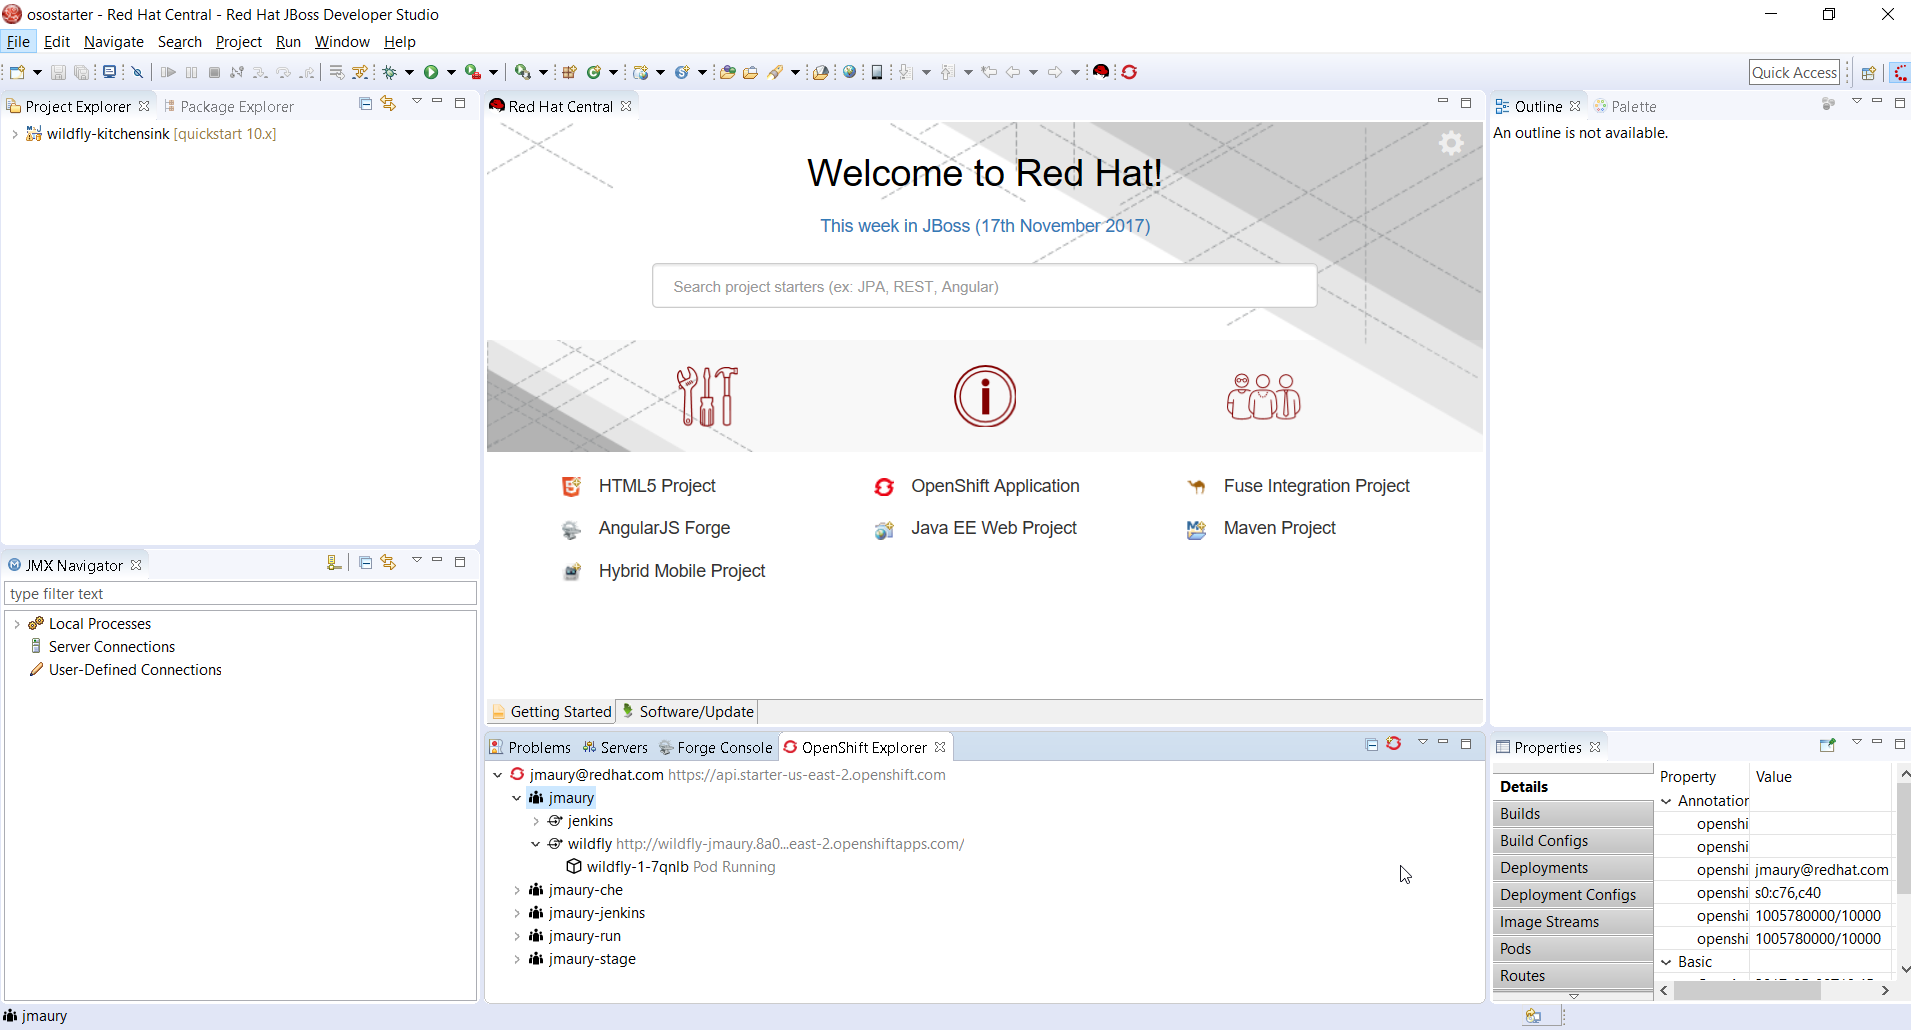 Develop and Deploy on OpenShift Online Starter using Red Hat